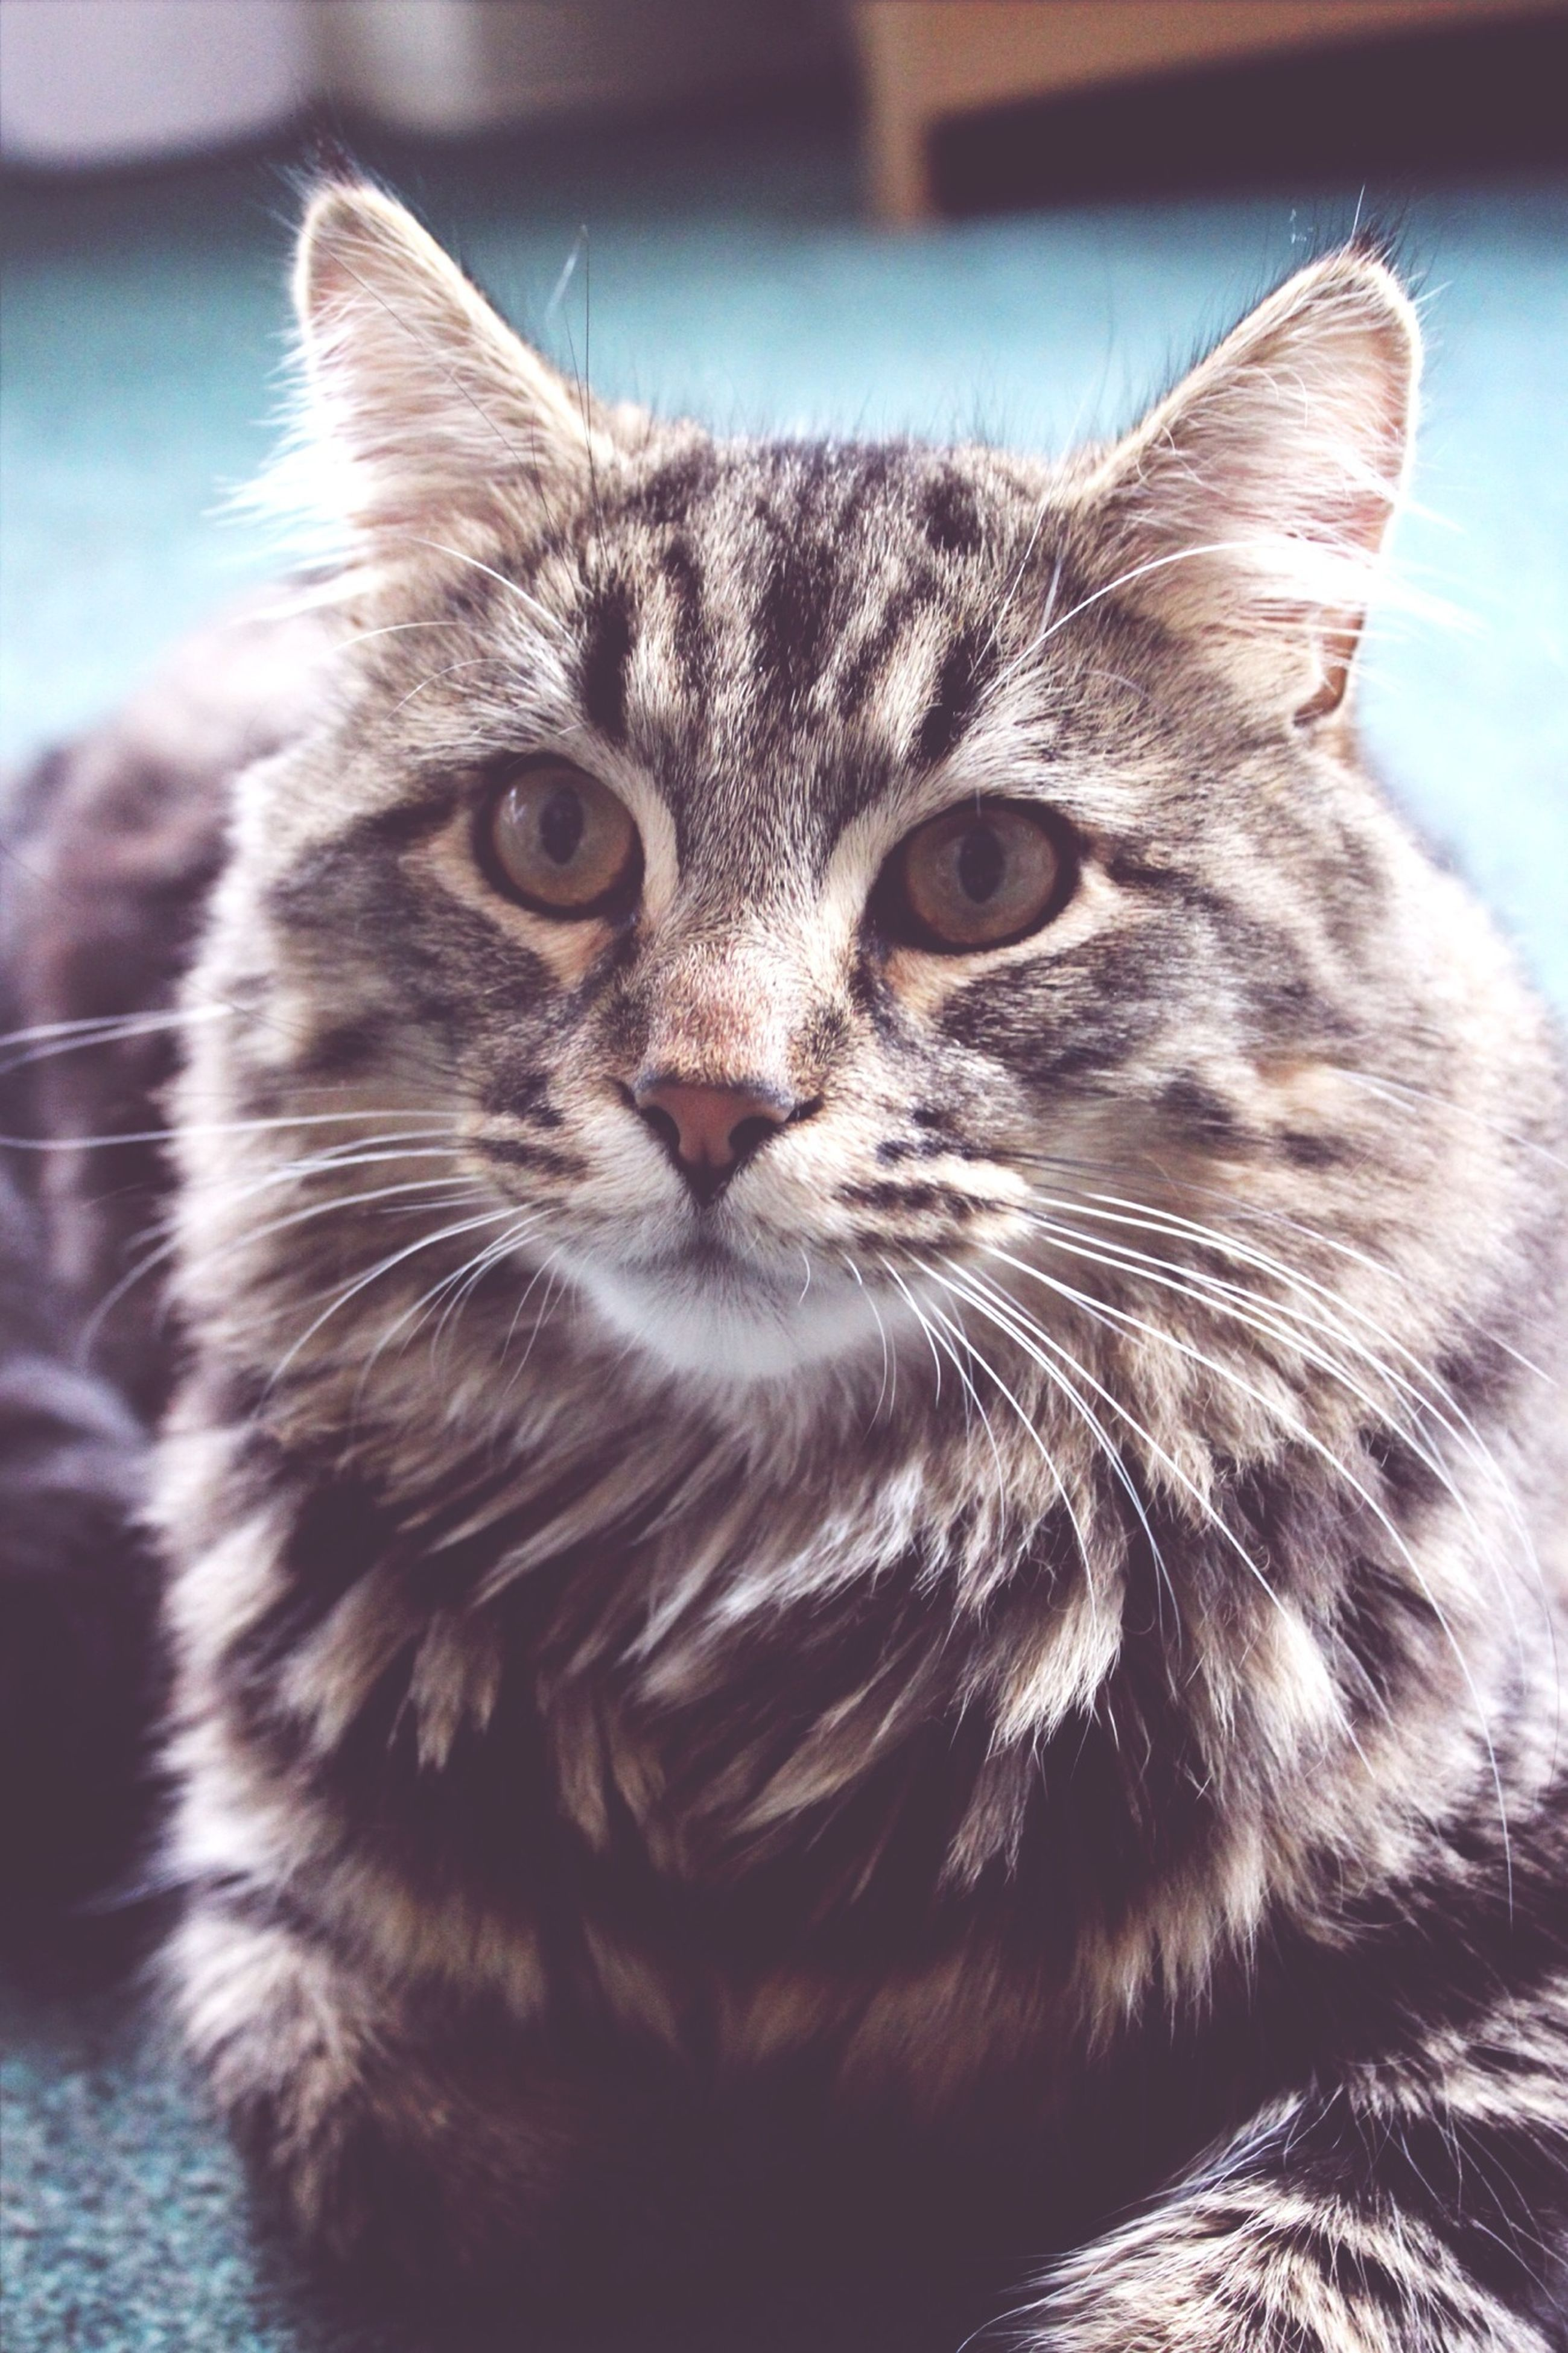 domestic cat, one animal, animal themes, pets, cat, whisker, domestic animals, feline, mammal, close-up, portrait, looking at camera, focus on foreground, animal head, animal eye, indoors, relaxation, alertness, front view